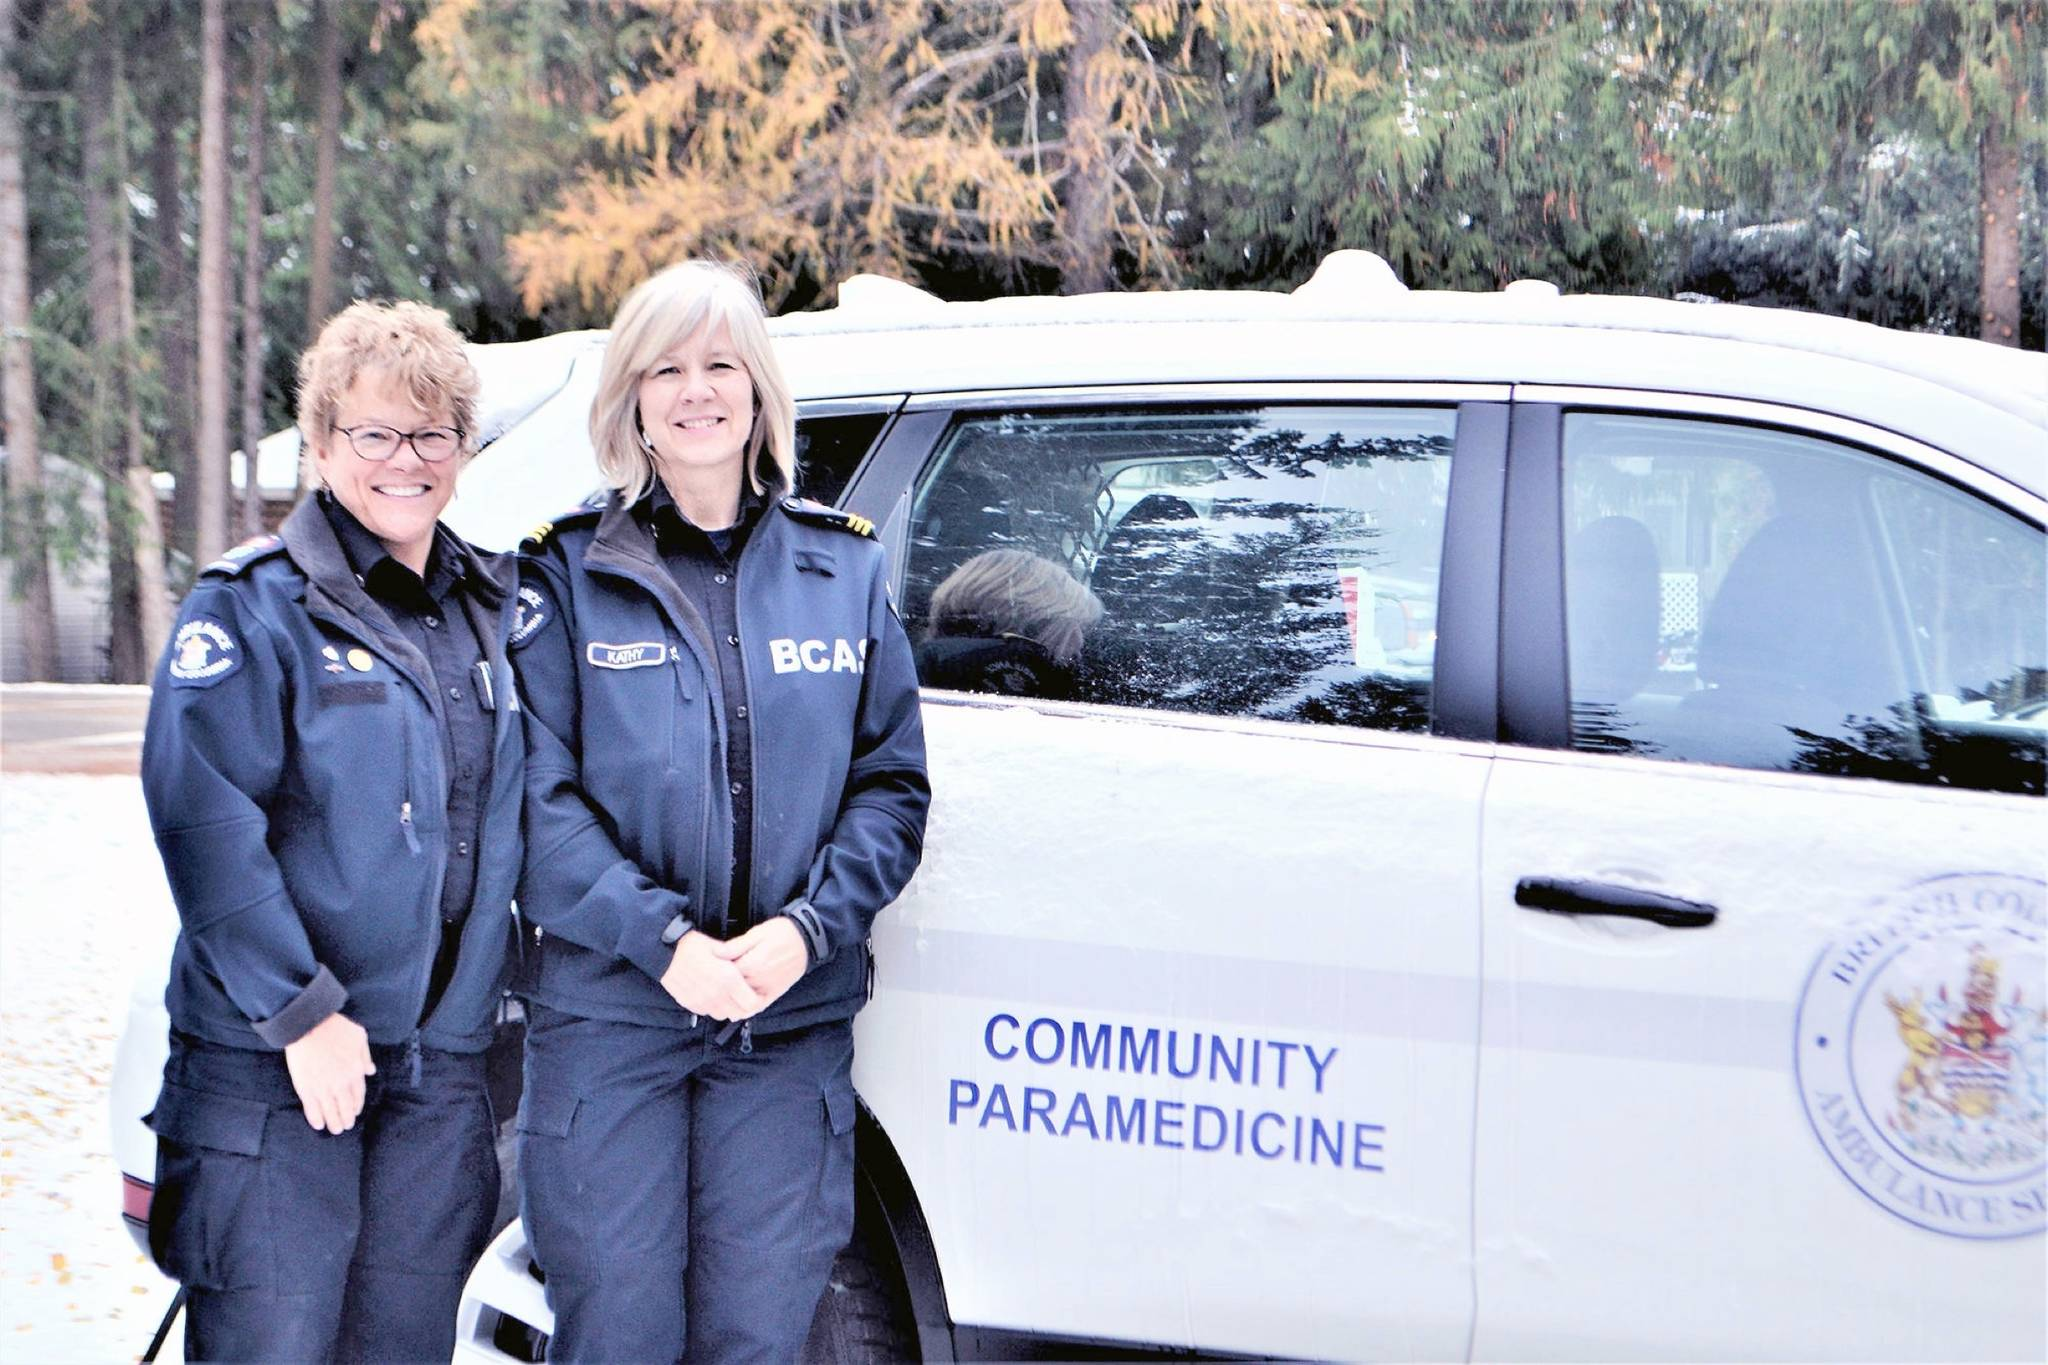 FILE — Paramedics Suzie Cameron and Kathy Crandlemire are currently training to deliver BC Emergency Health Services' (BCEHS) new community paramedicine program in Sicamous. (Black Press)